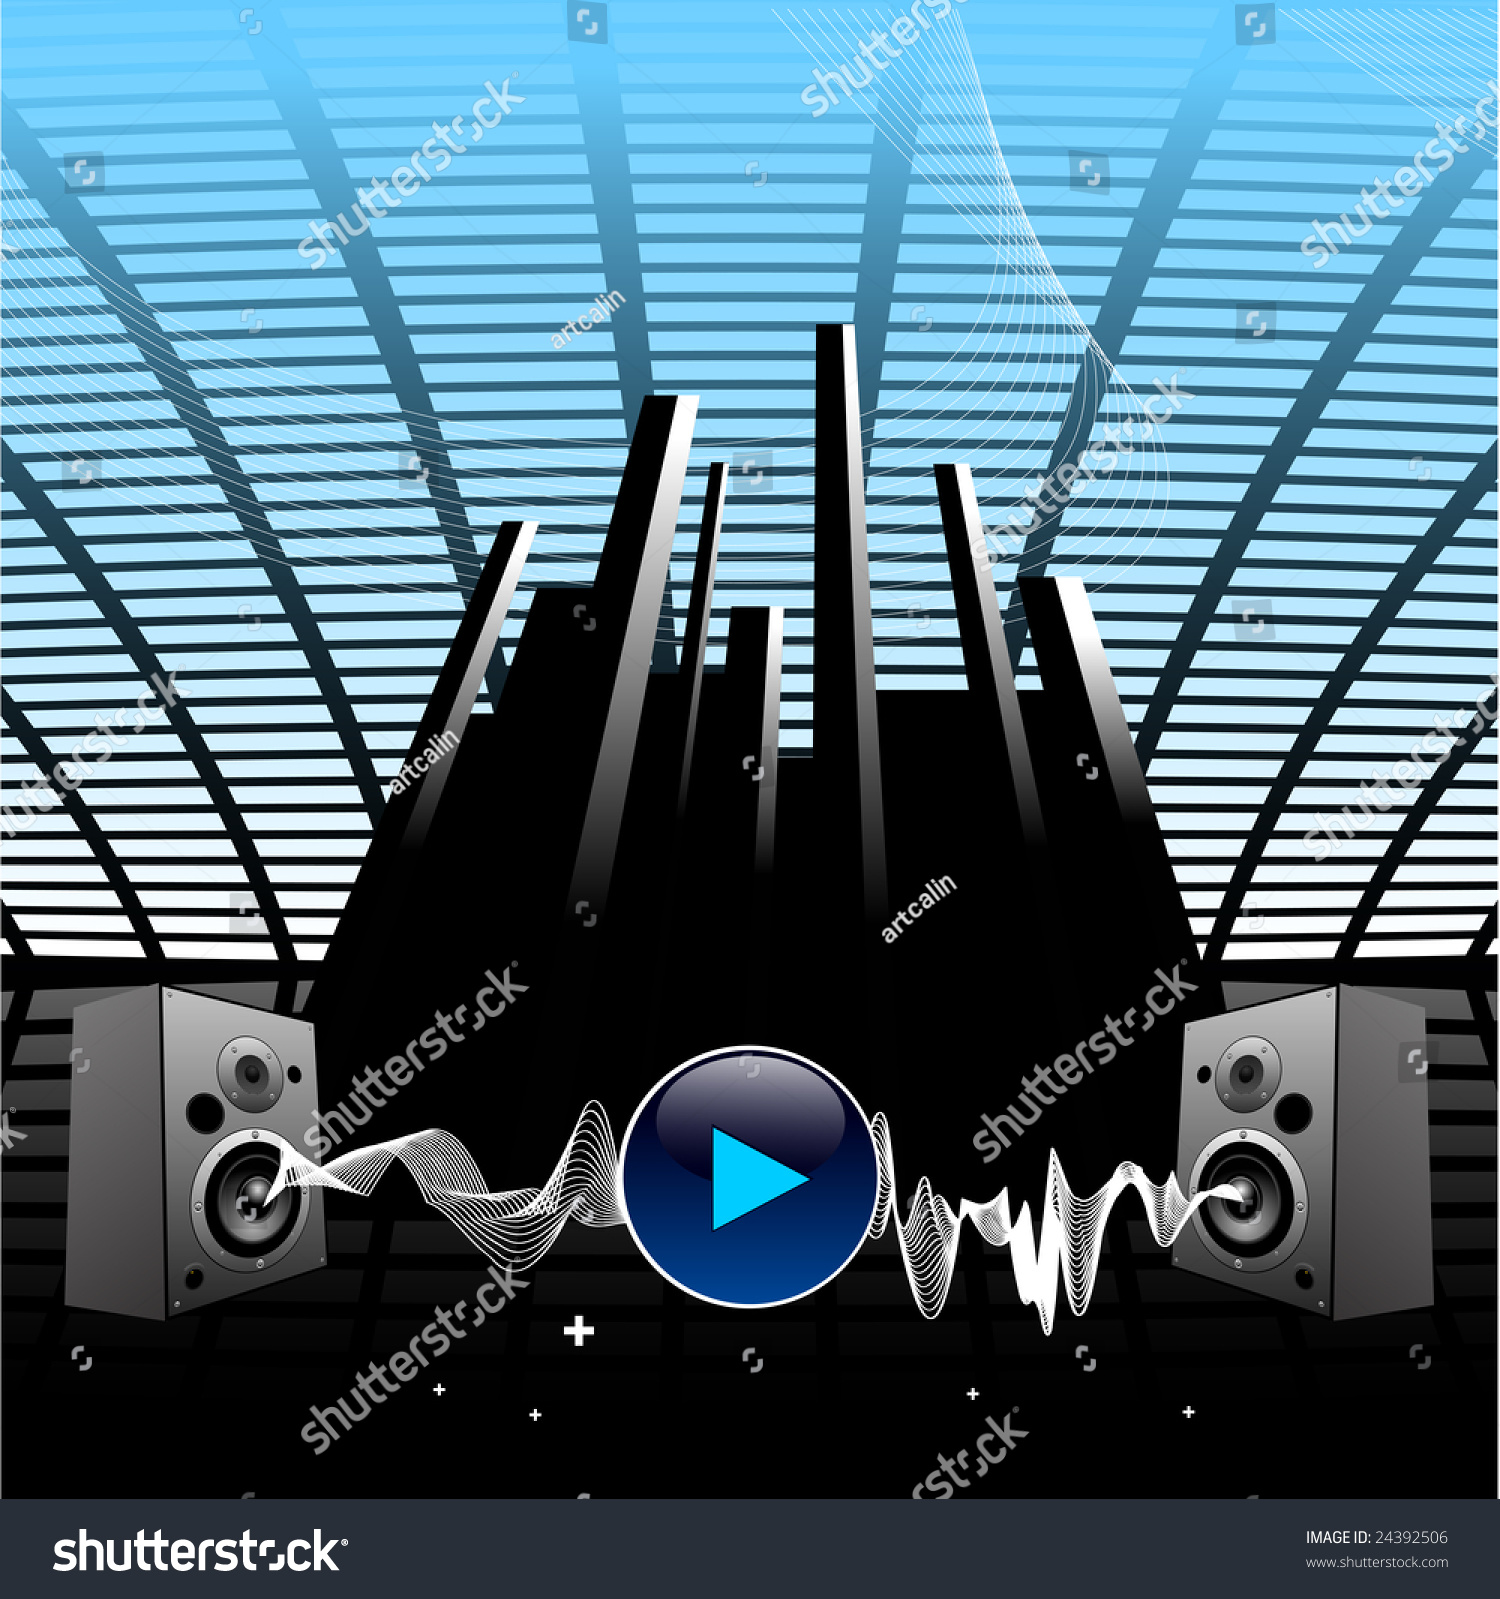 hi tech vector music wallpaper with sound waves audio speakers blue colors 24392506. Black Bedroom Furniture Sets. Home Design Ideas